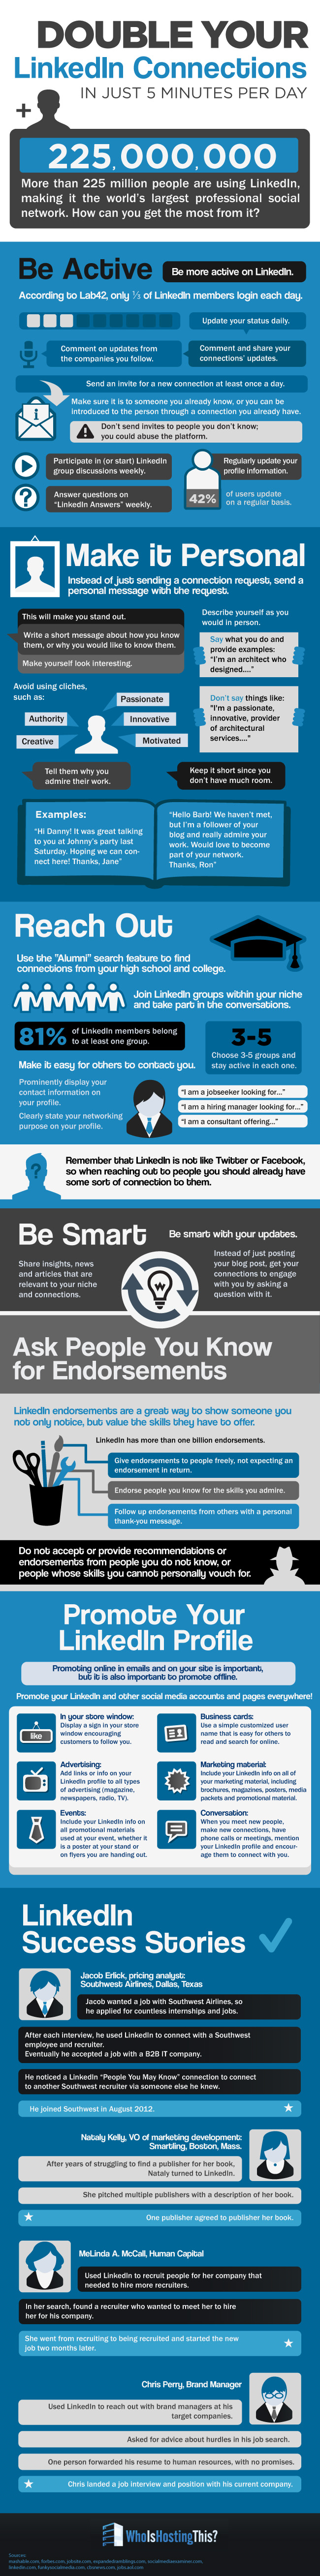 LinkedIn Connections Infographic